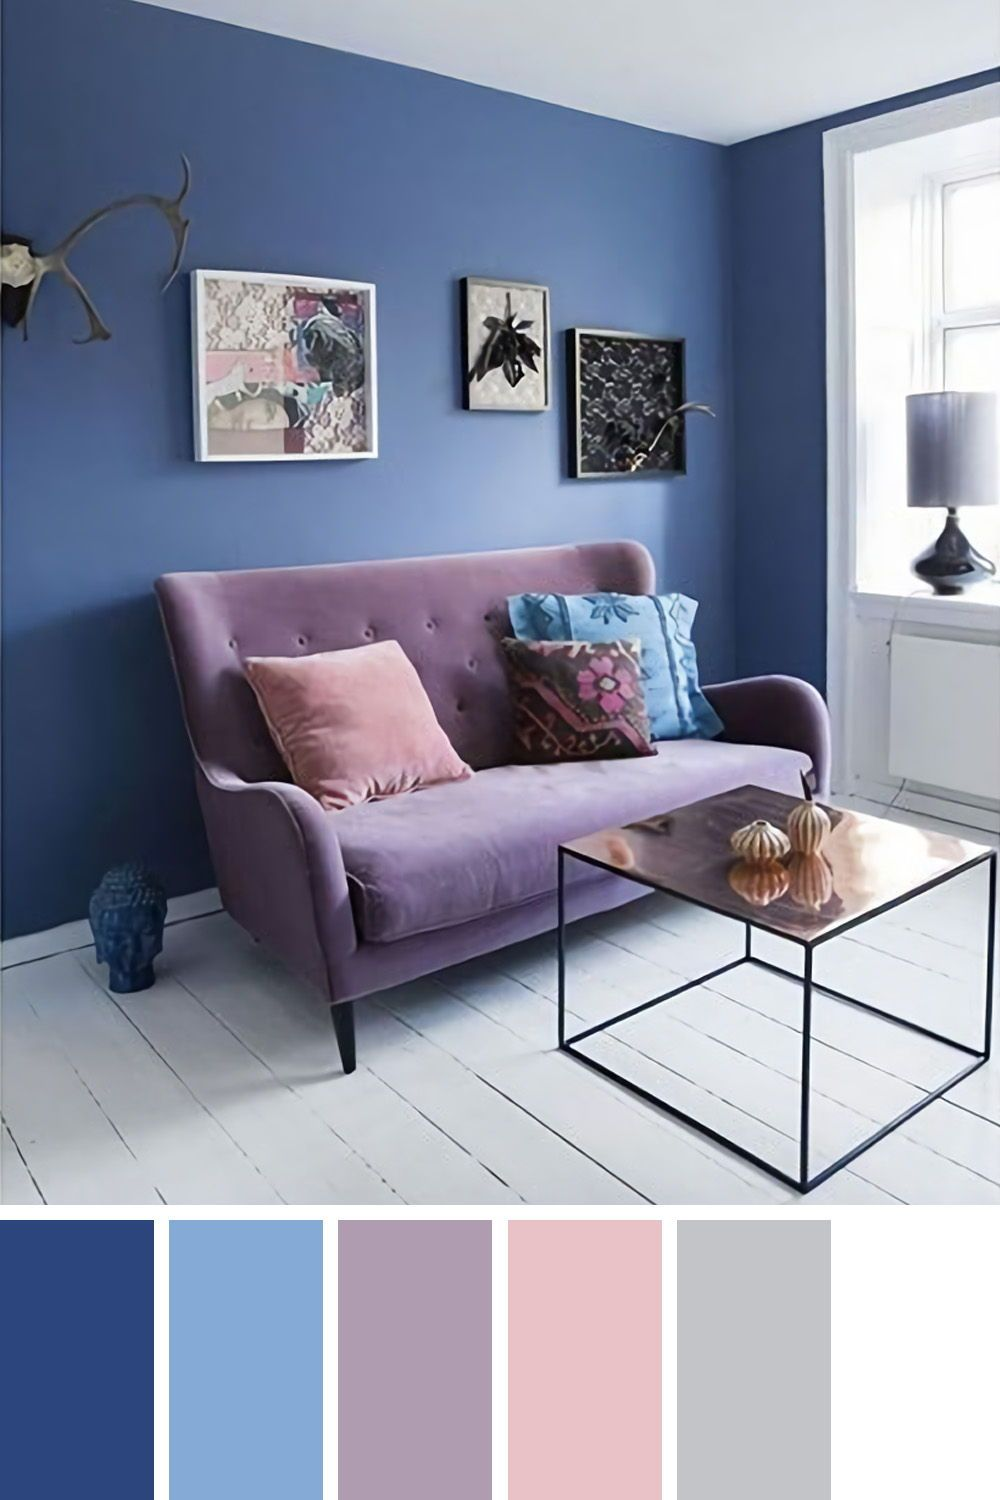 25 Gorgeous Living Room Color Schemes to Make Your Room Cozy ...